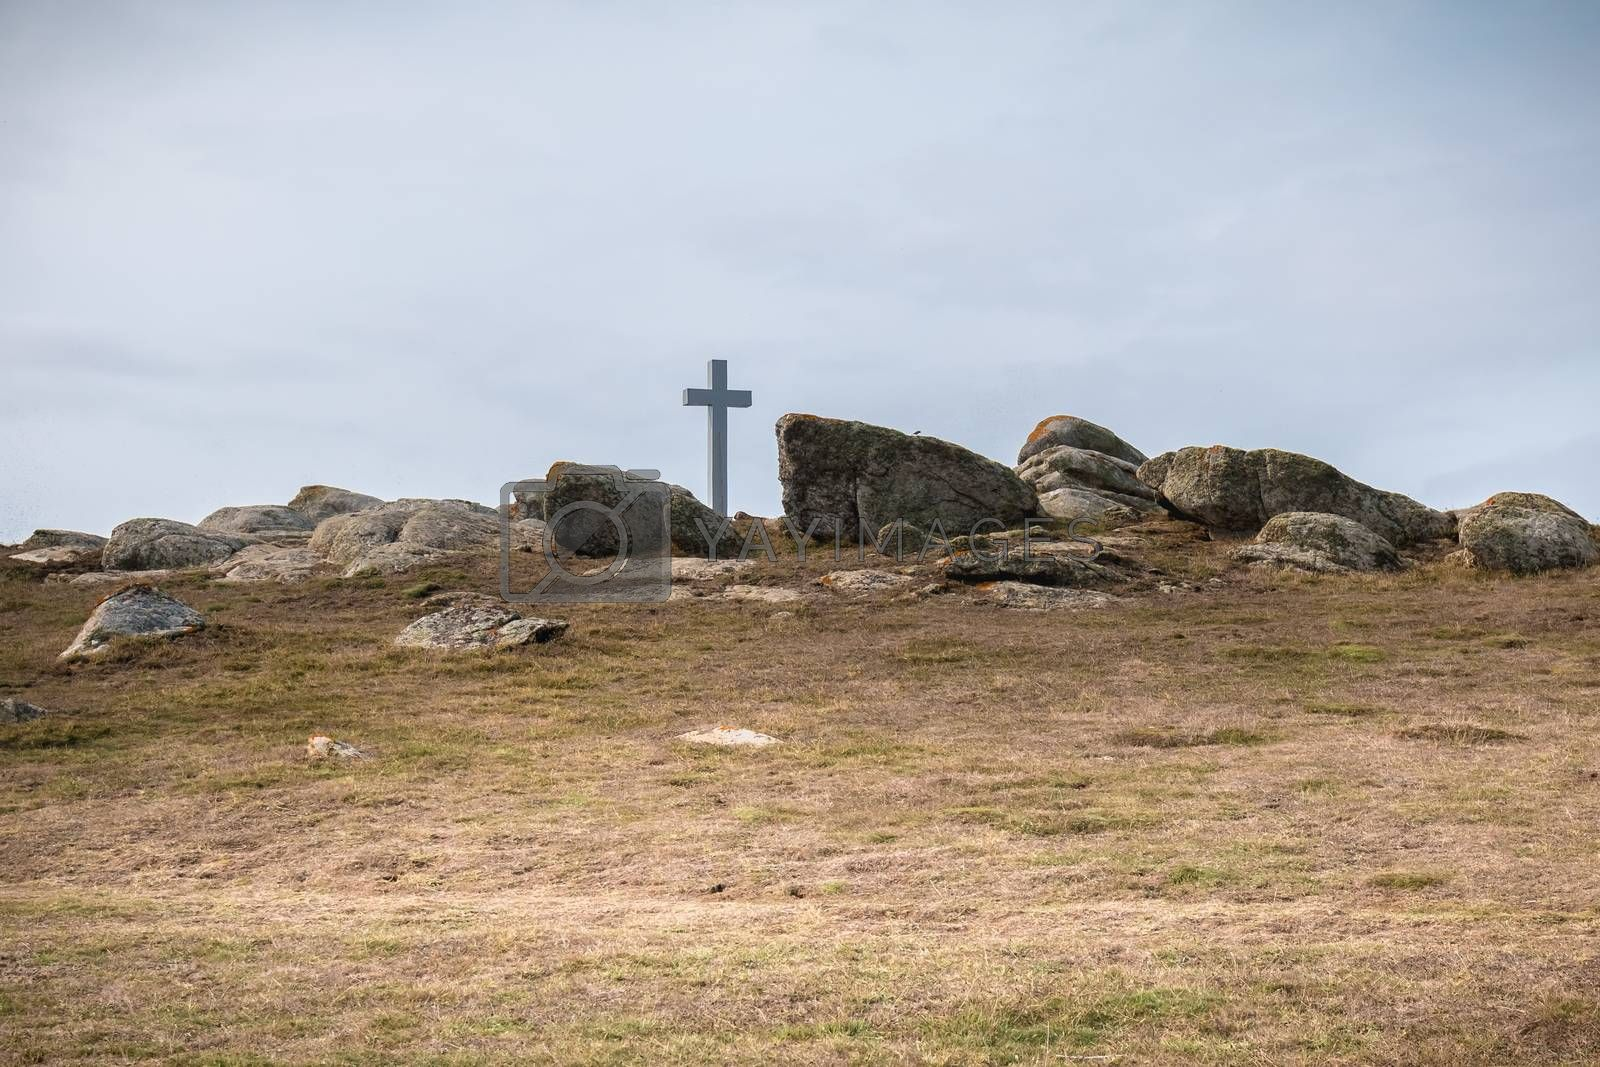 view of the wild vegetation of the cross of the tip of Chatelet on the island of Yeu, France in summer